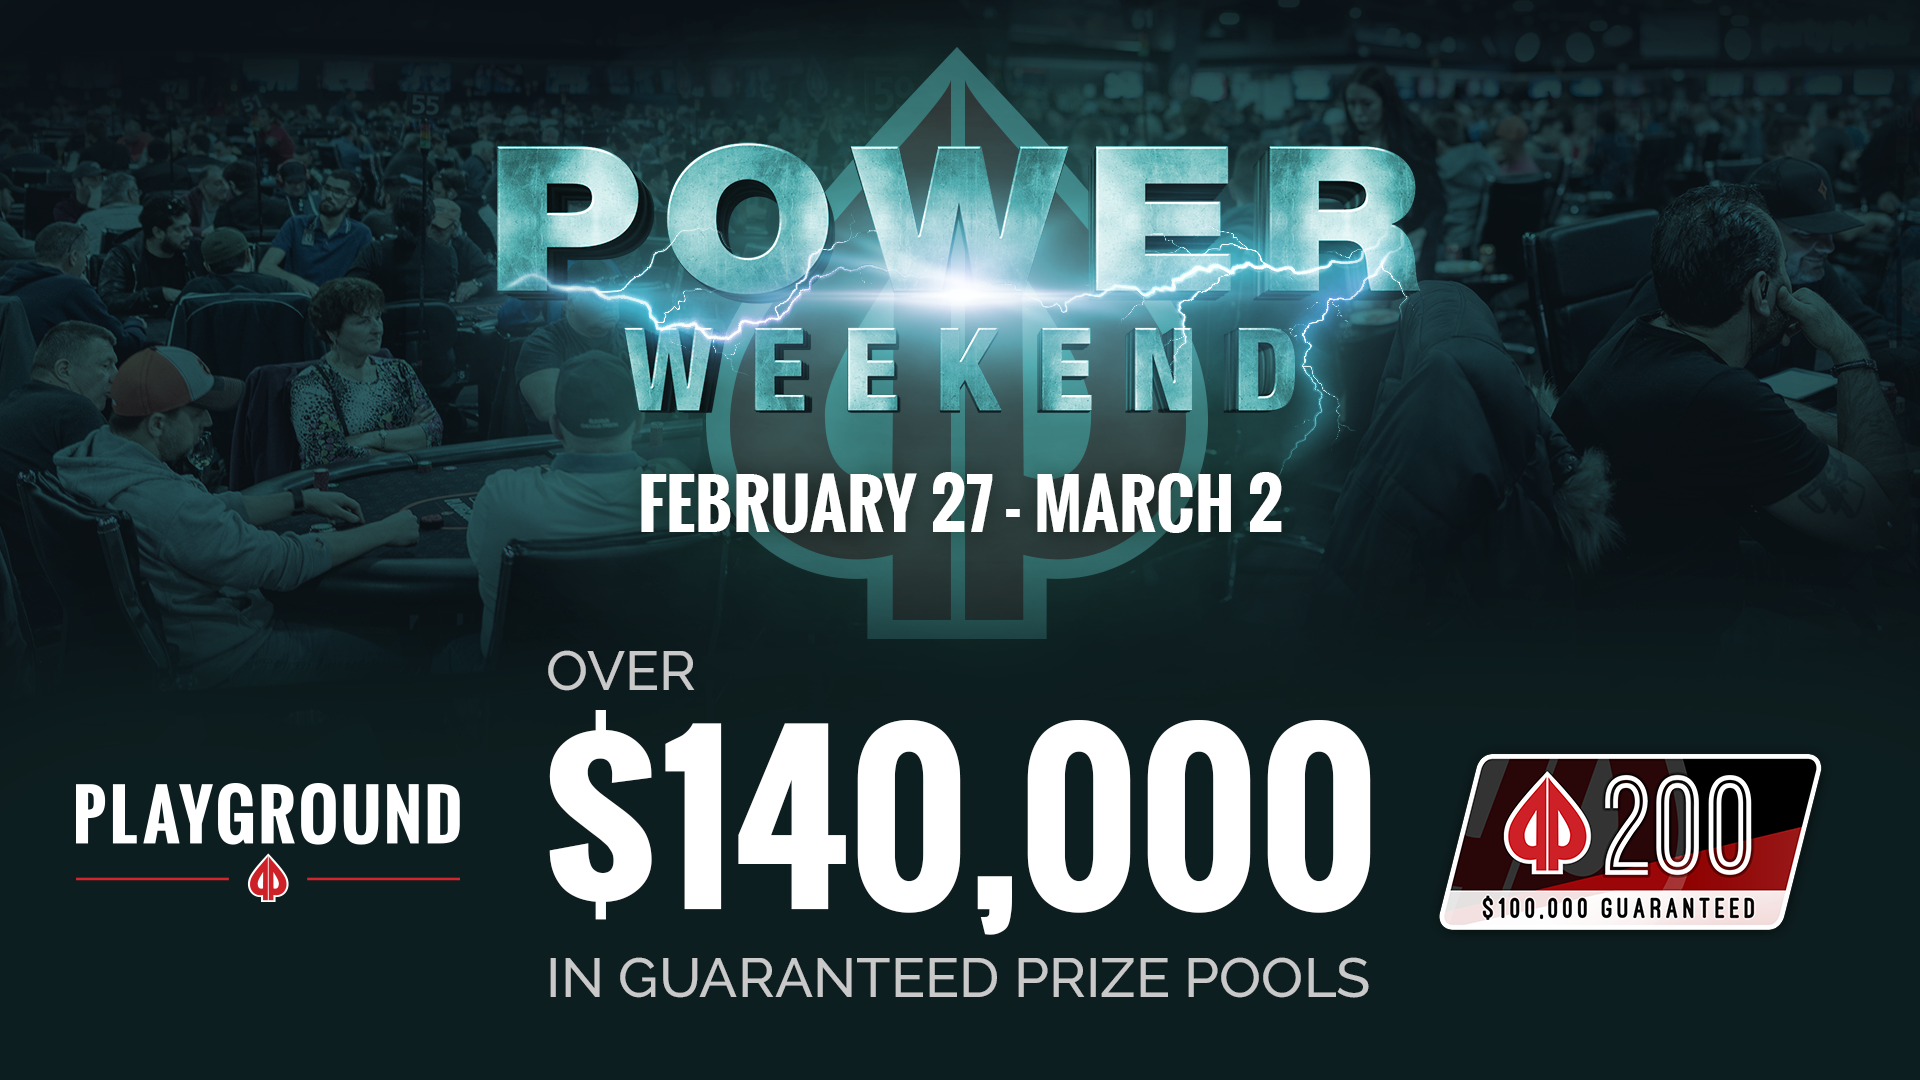 A Power Weekend In February